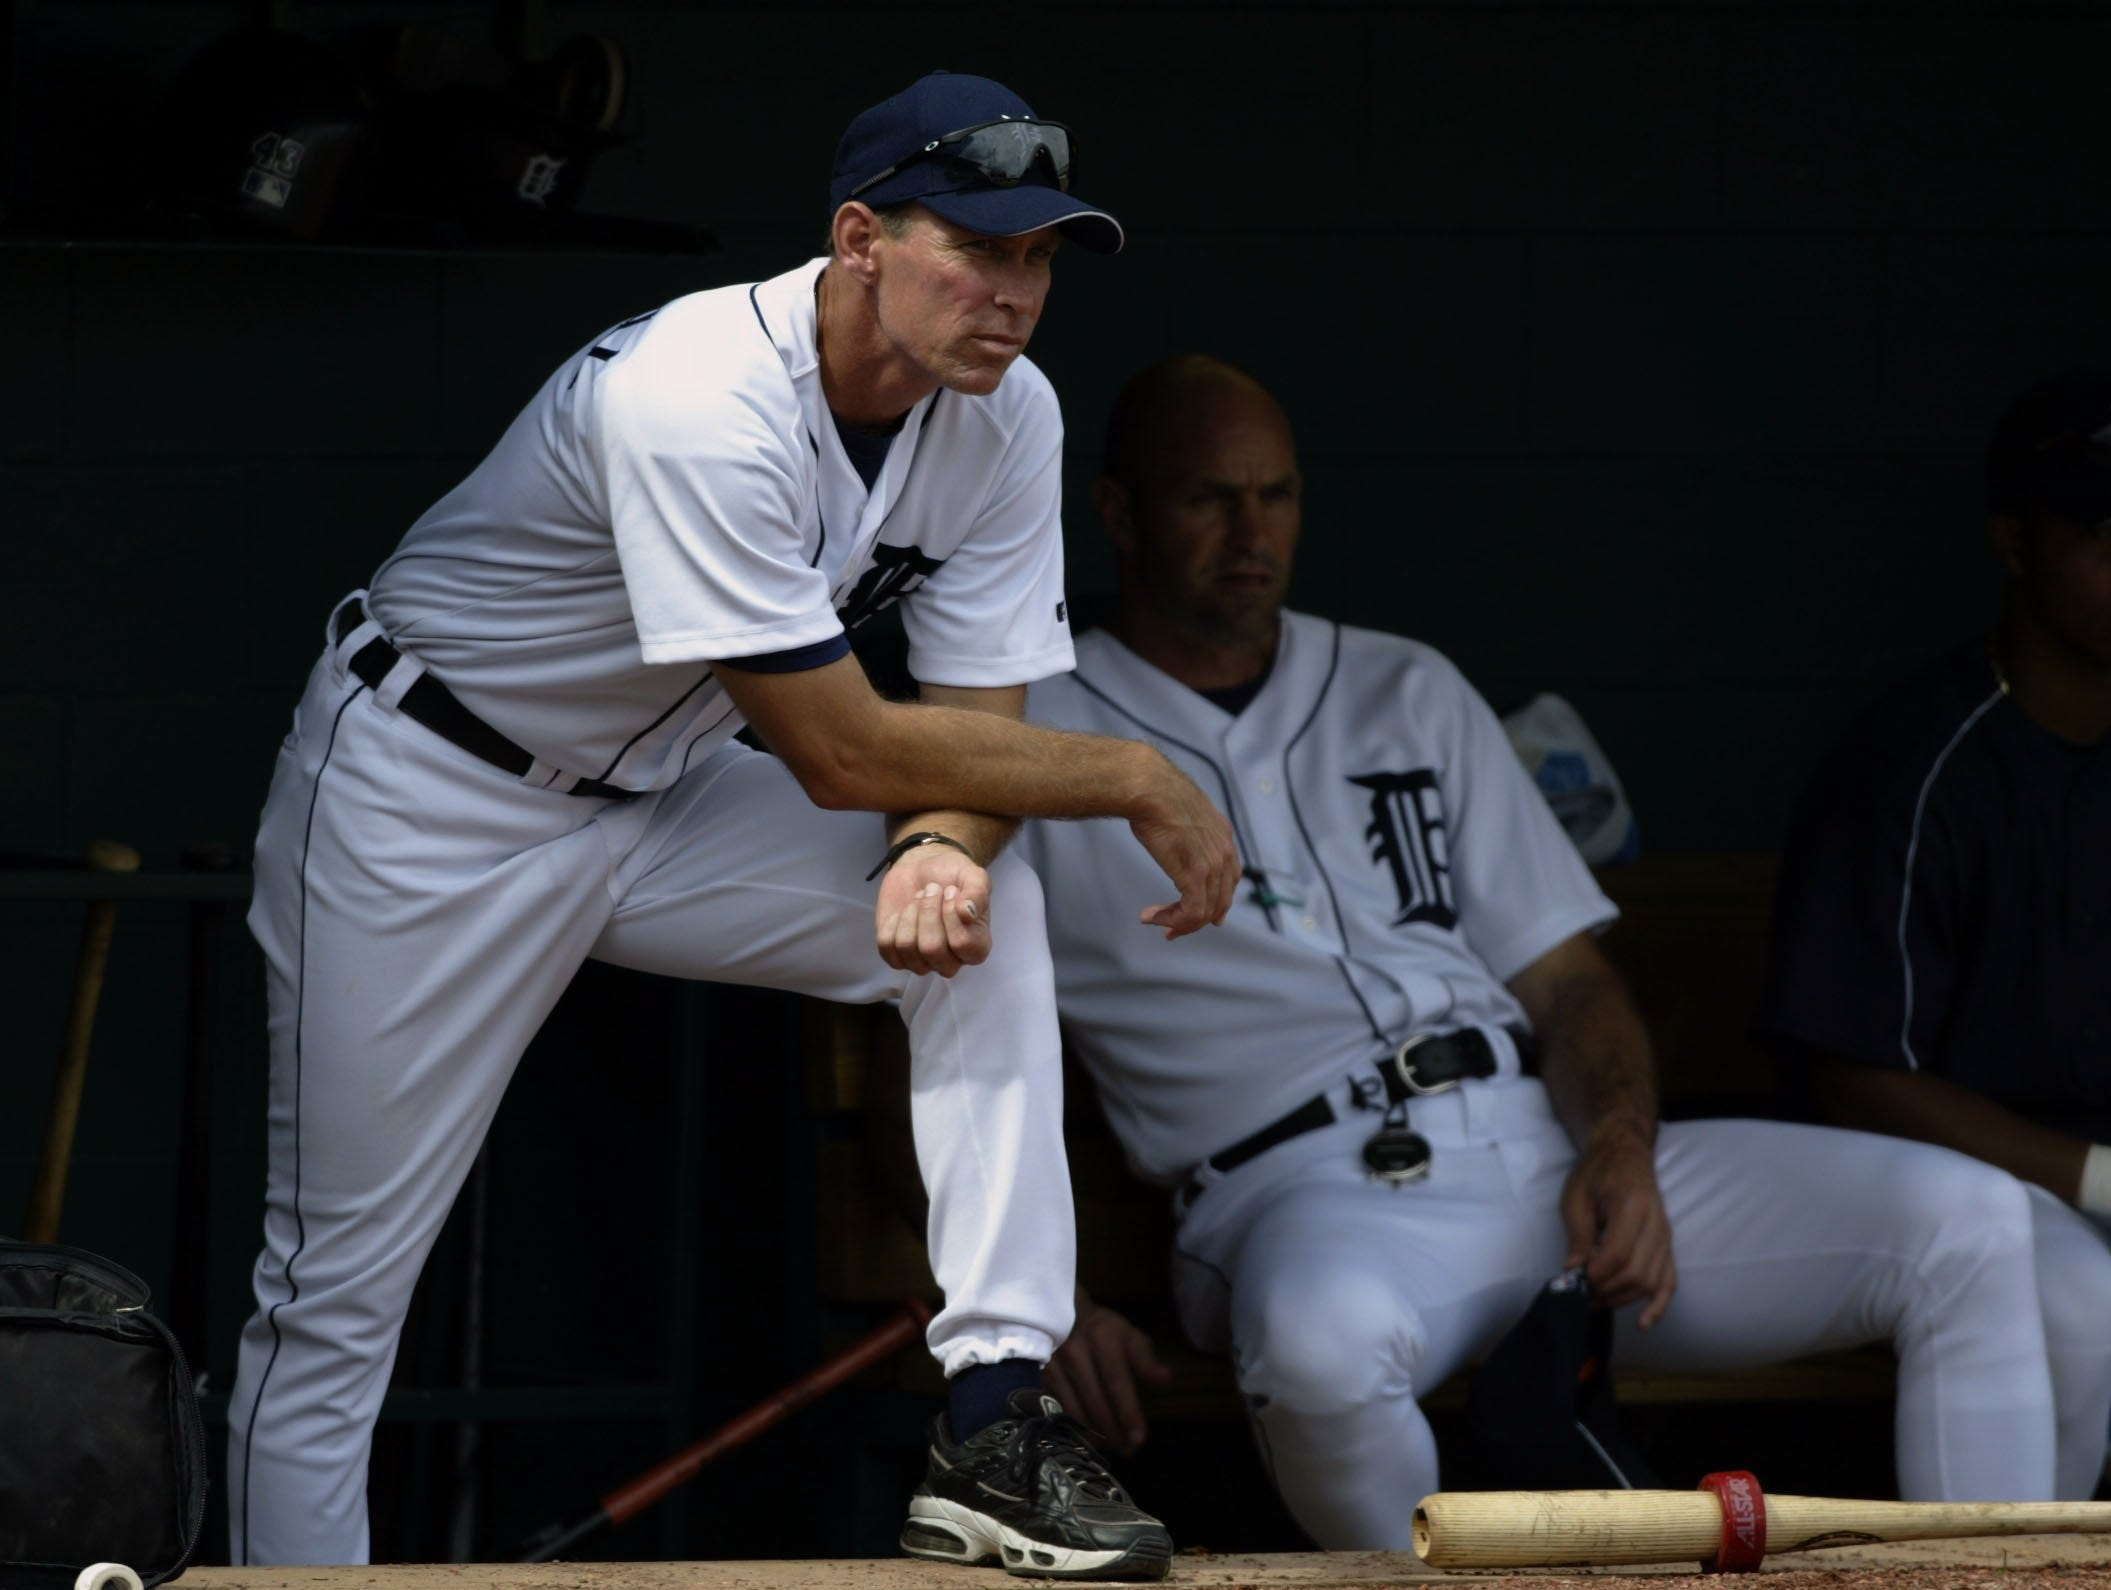 Detroit Tigers' Manager Alan Trammell keeps an eye on the action in an intersquad game at Marchant Stadium in Lakeland, Florida on Tuesday, February 25, 2003.